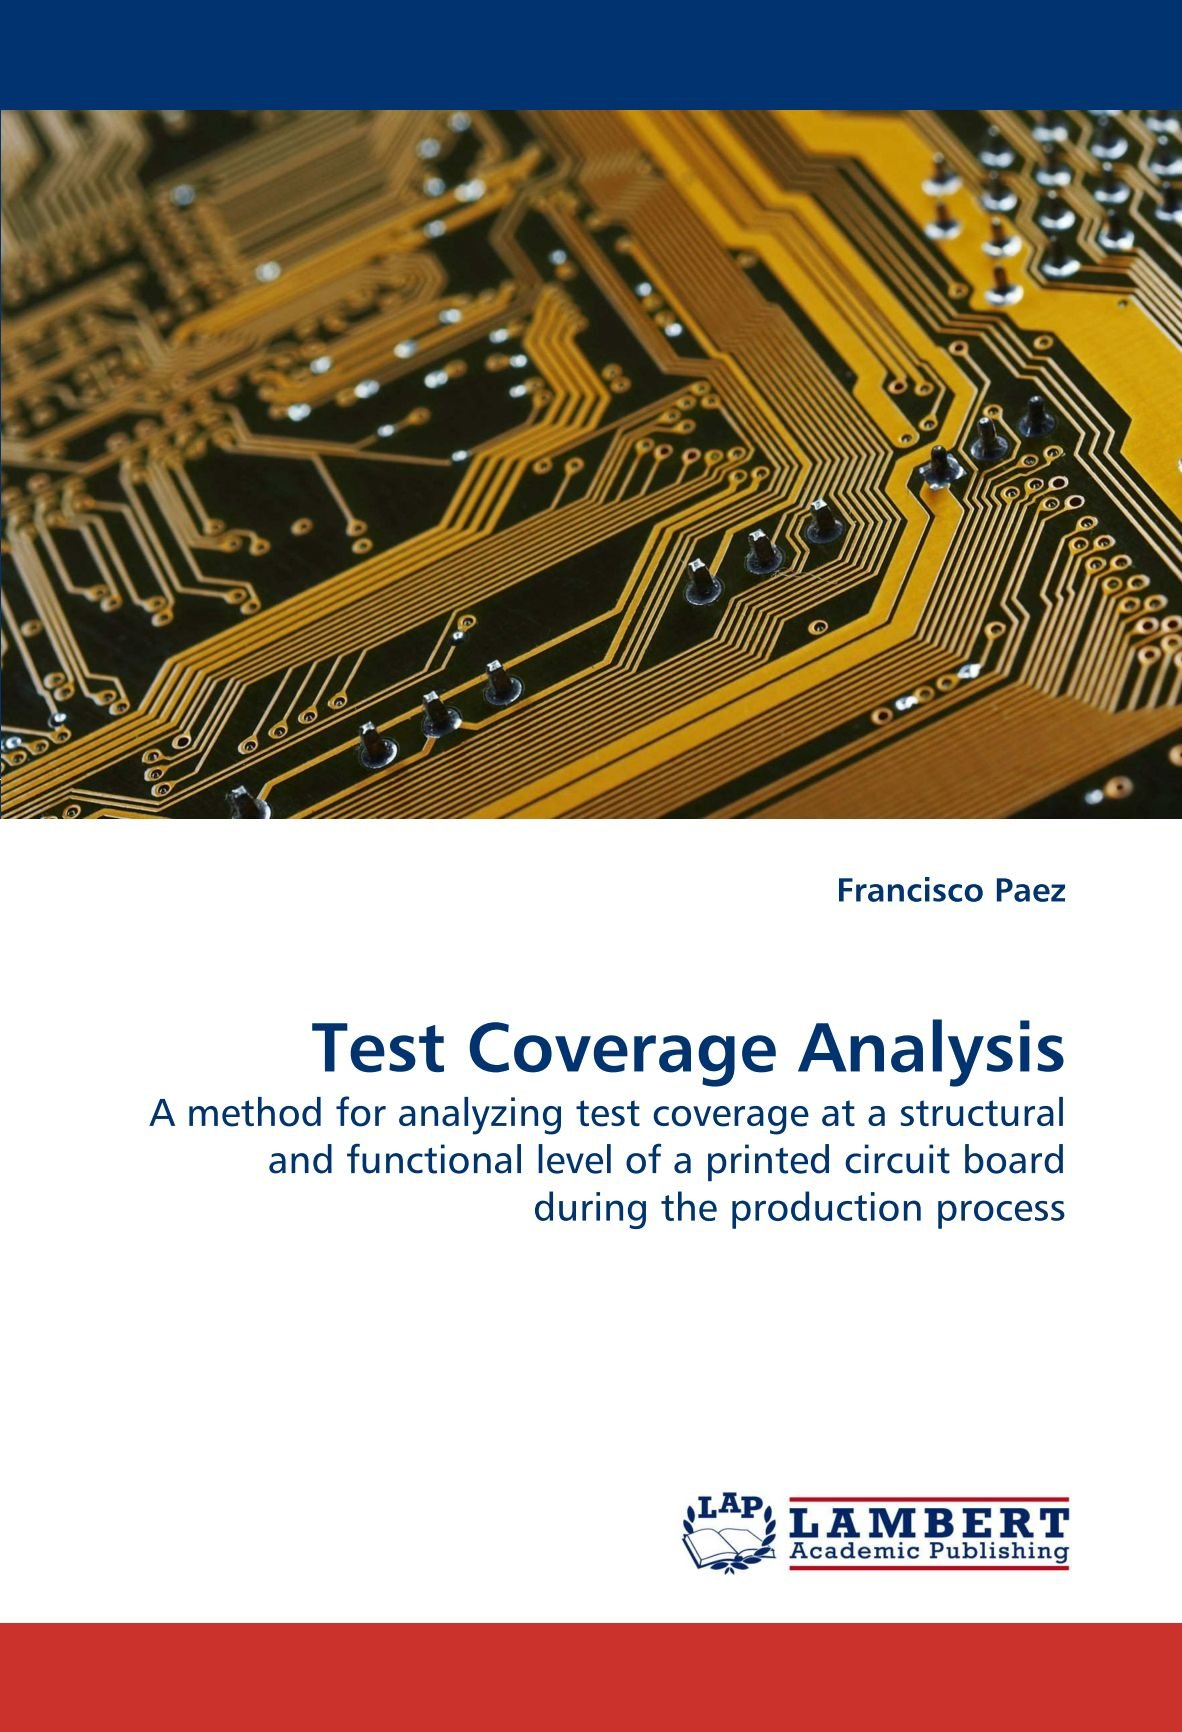 Test Coverage Analysis: A method for analyzing test coverage at a structural and functional level of a printed circuit board during the production process PDF